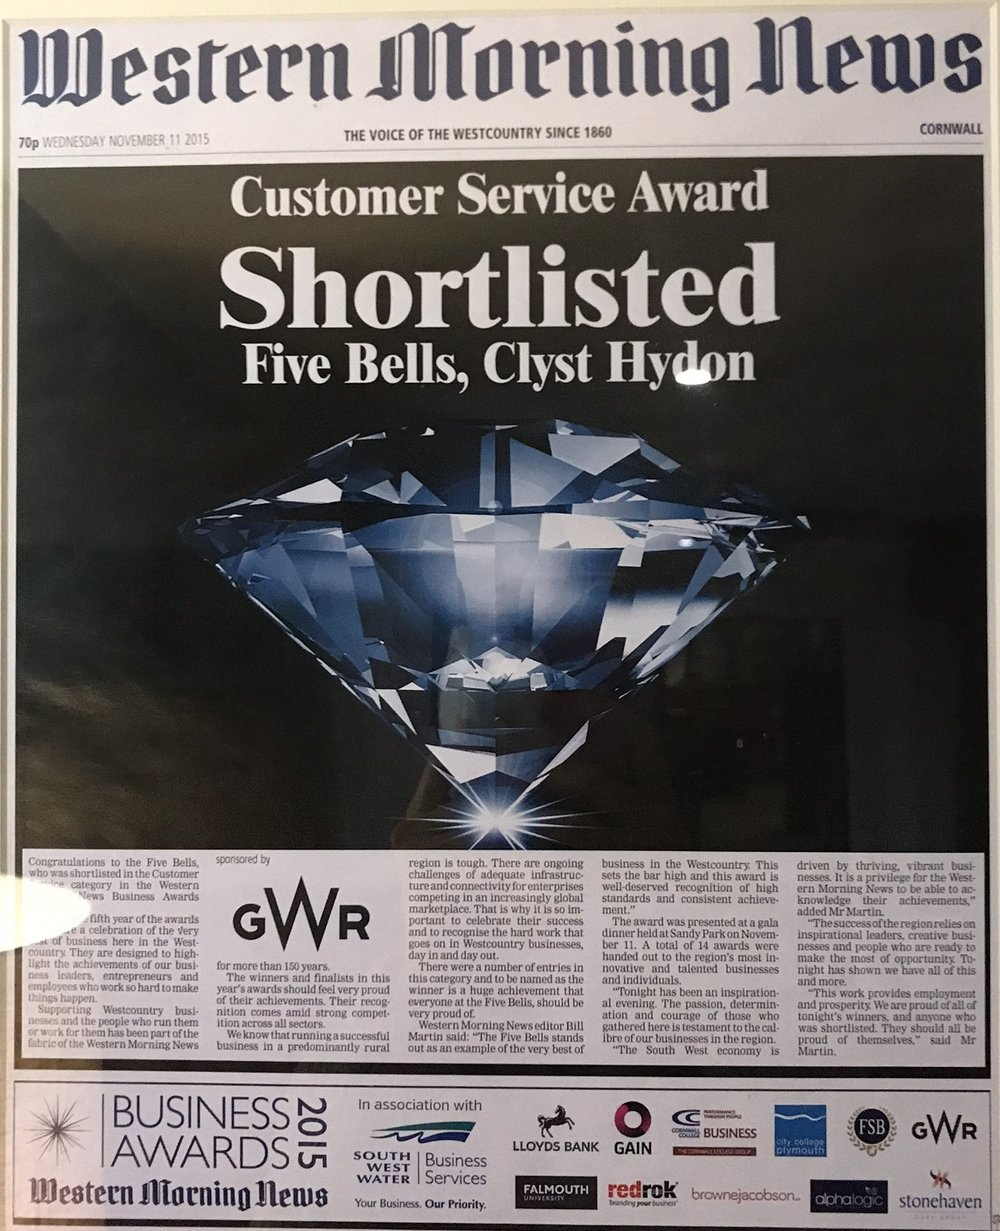 Western Morning News shortlisted for Customer Service Award